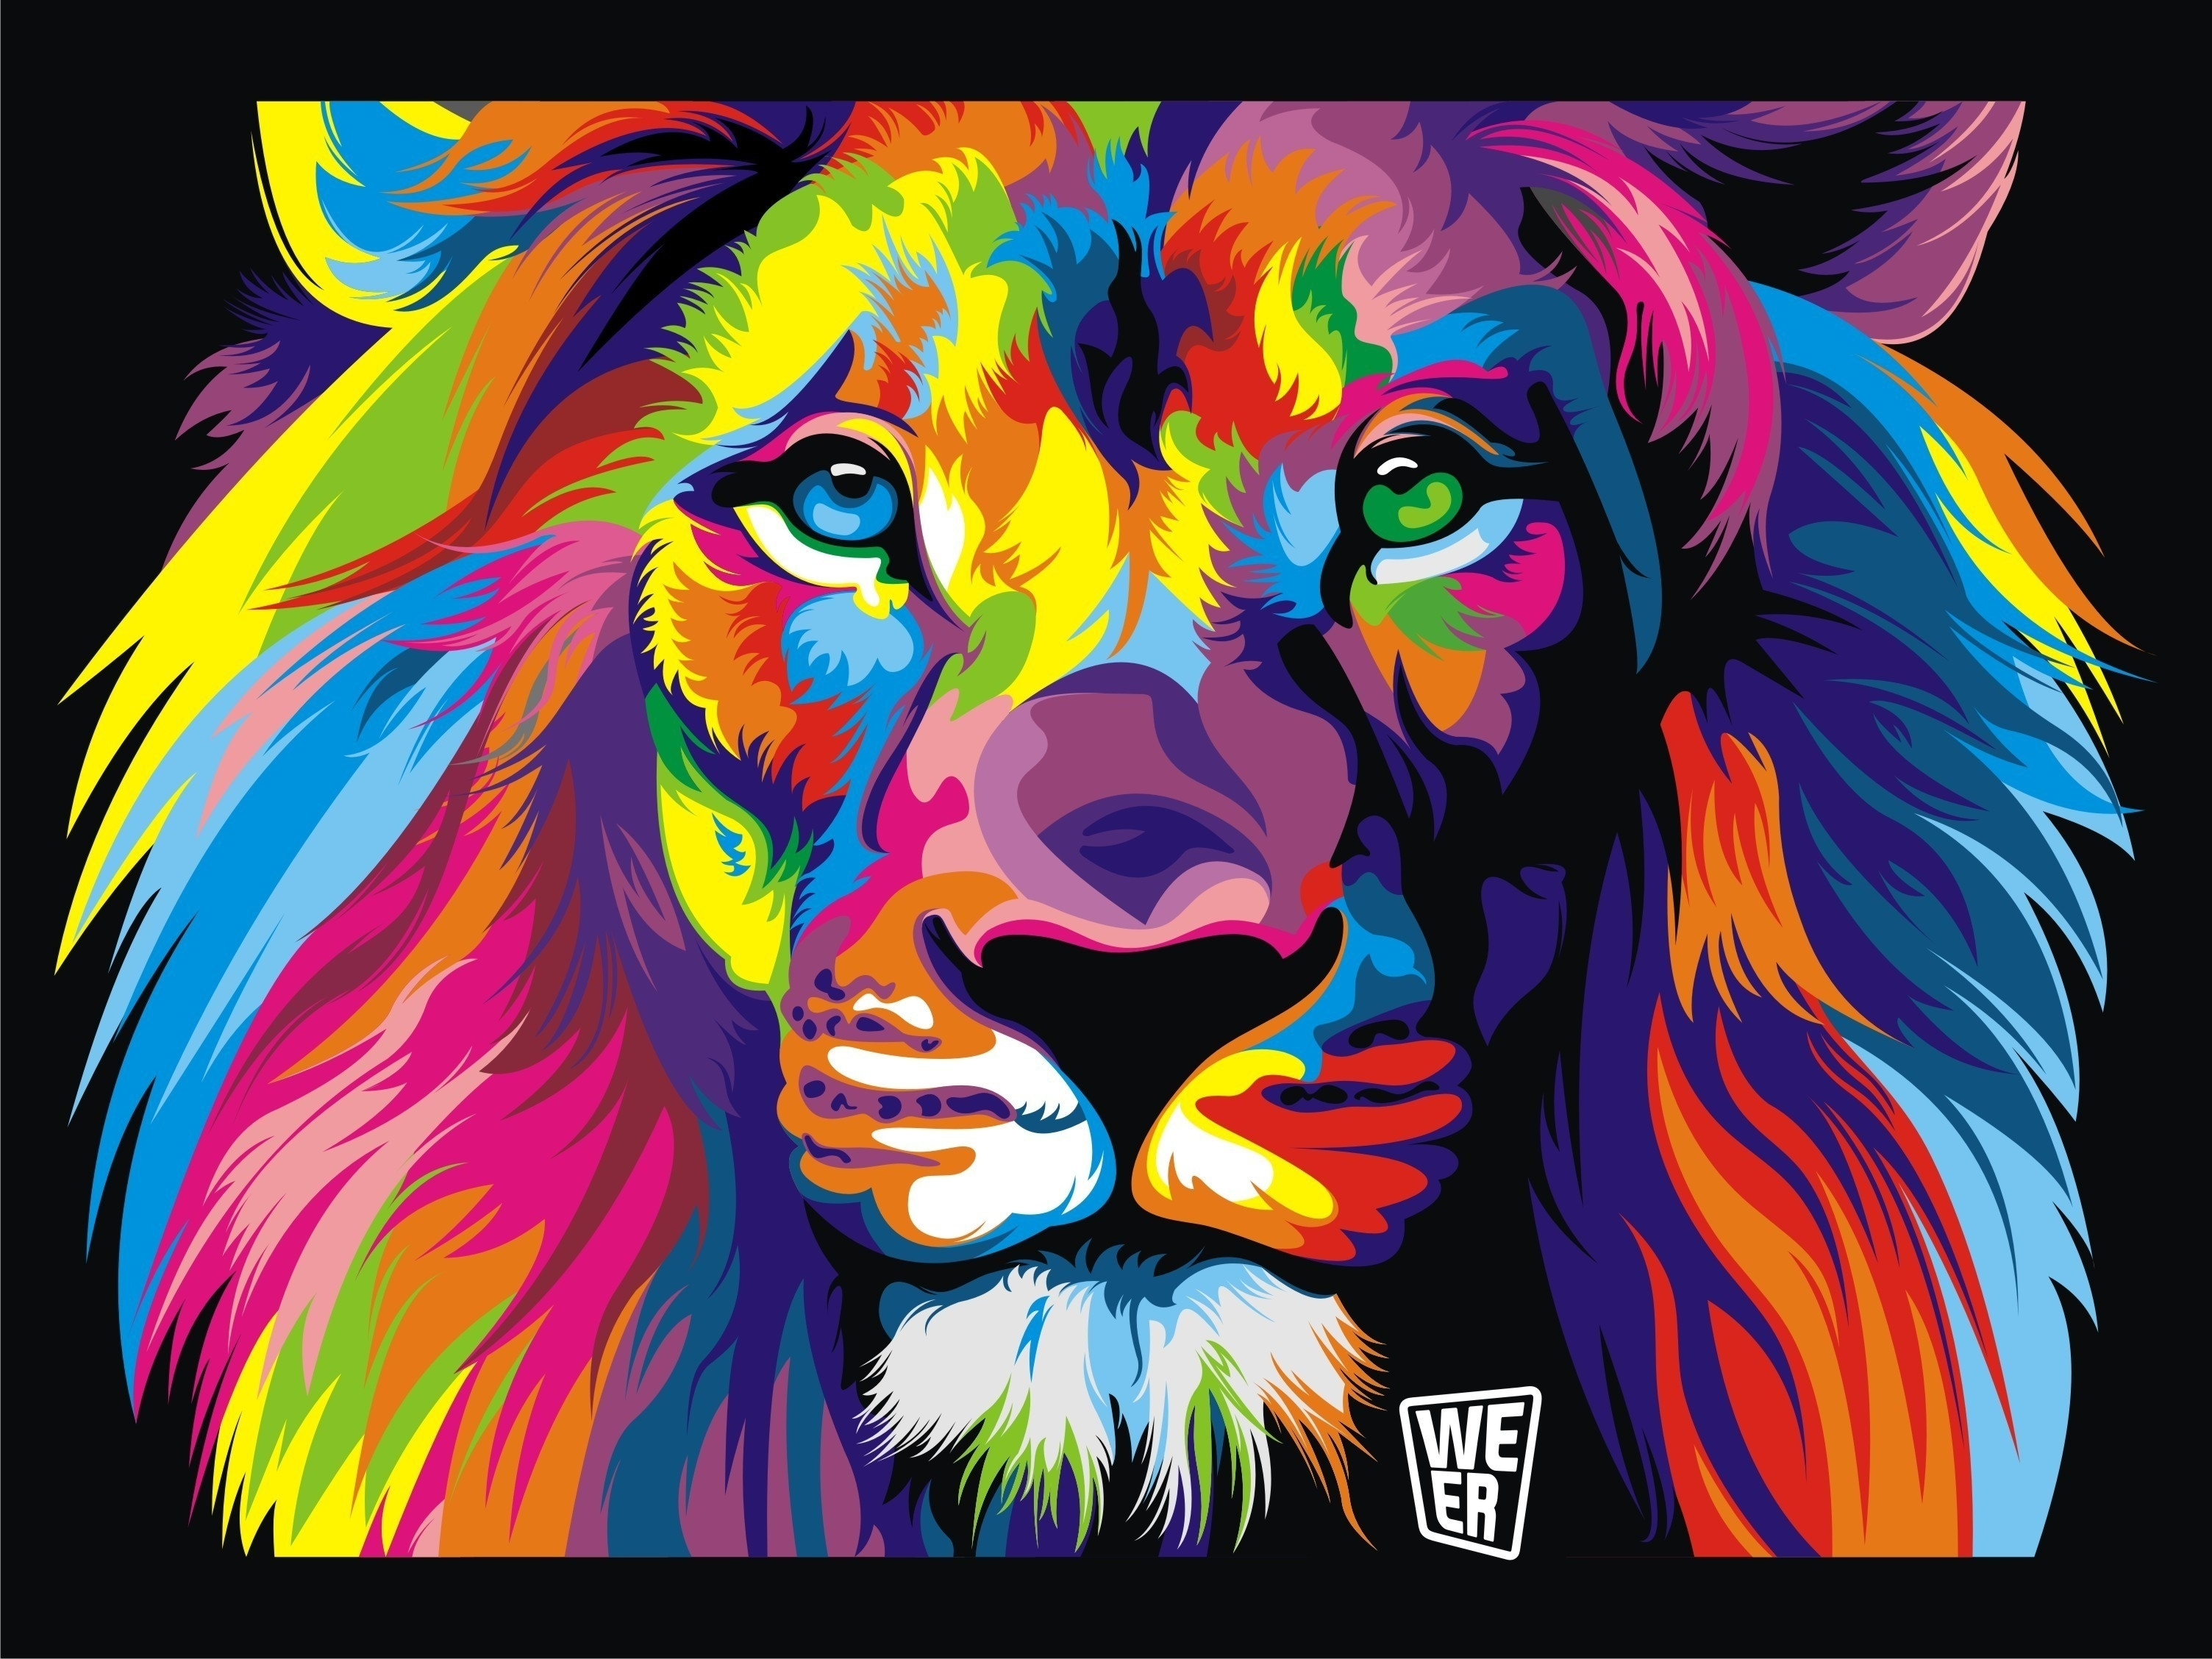 Colourful Lion Face Wallpaper | Hdwallpaperfx | Pinterest Regarding Best And Newest Abstract Lion Wall Art (View 18 of 20)